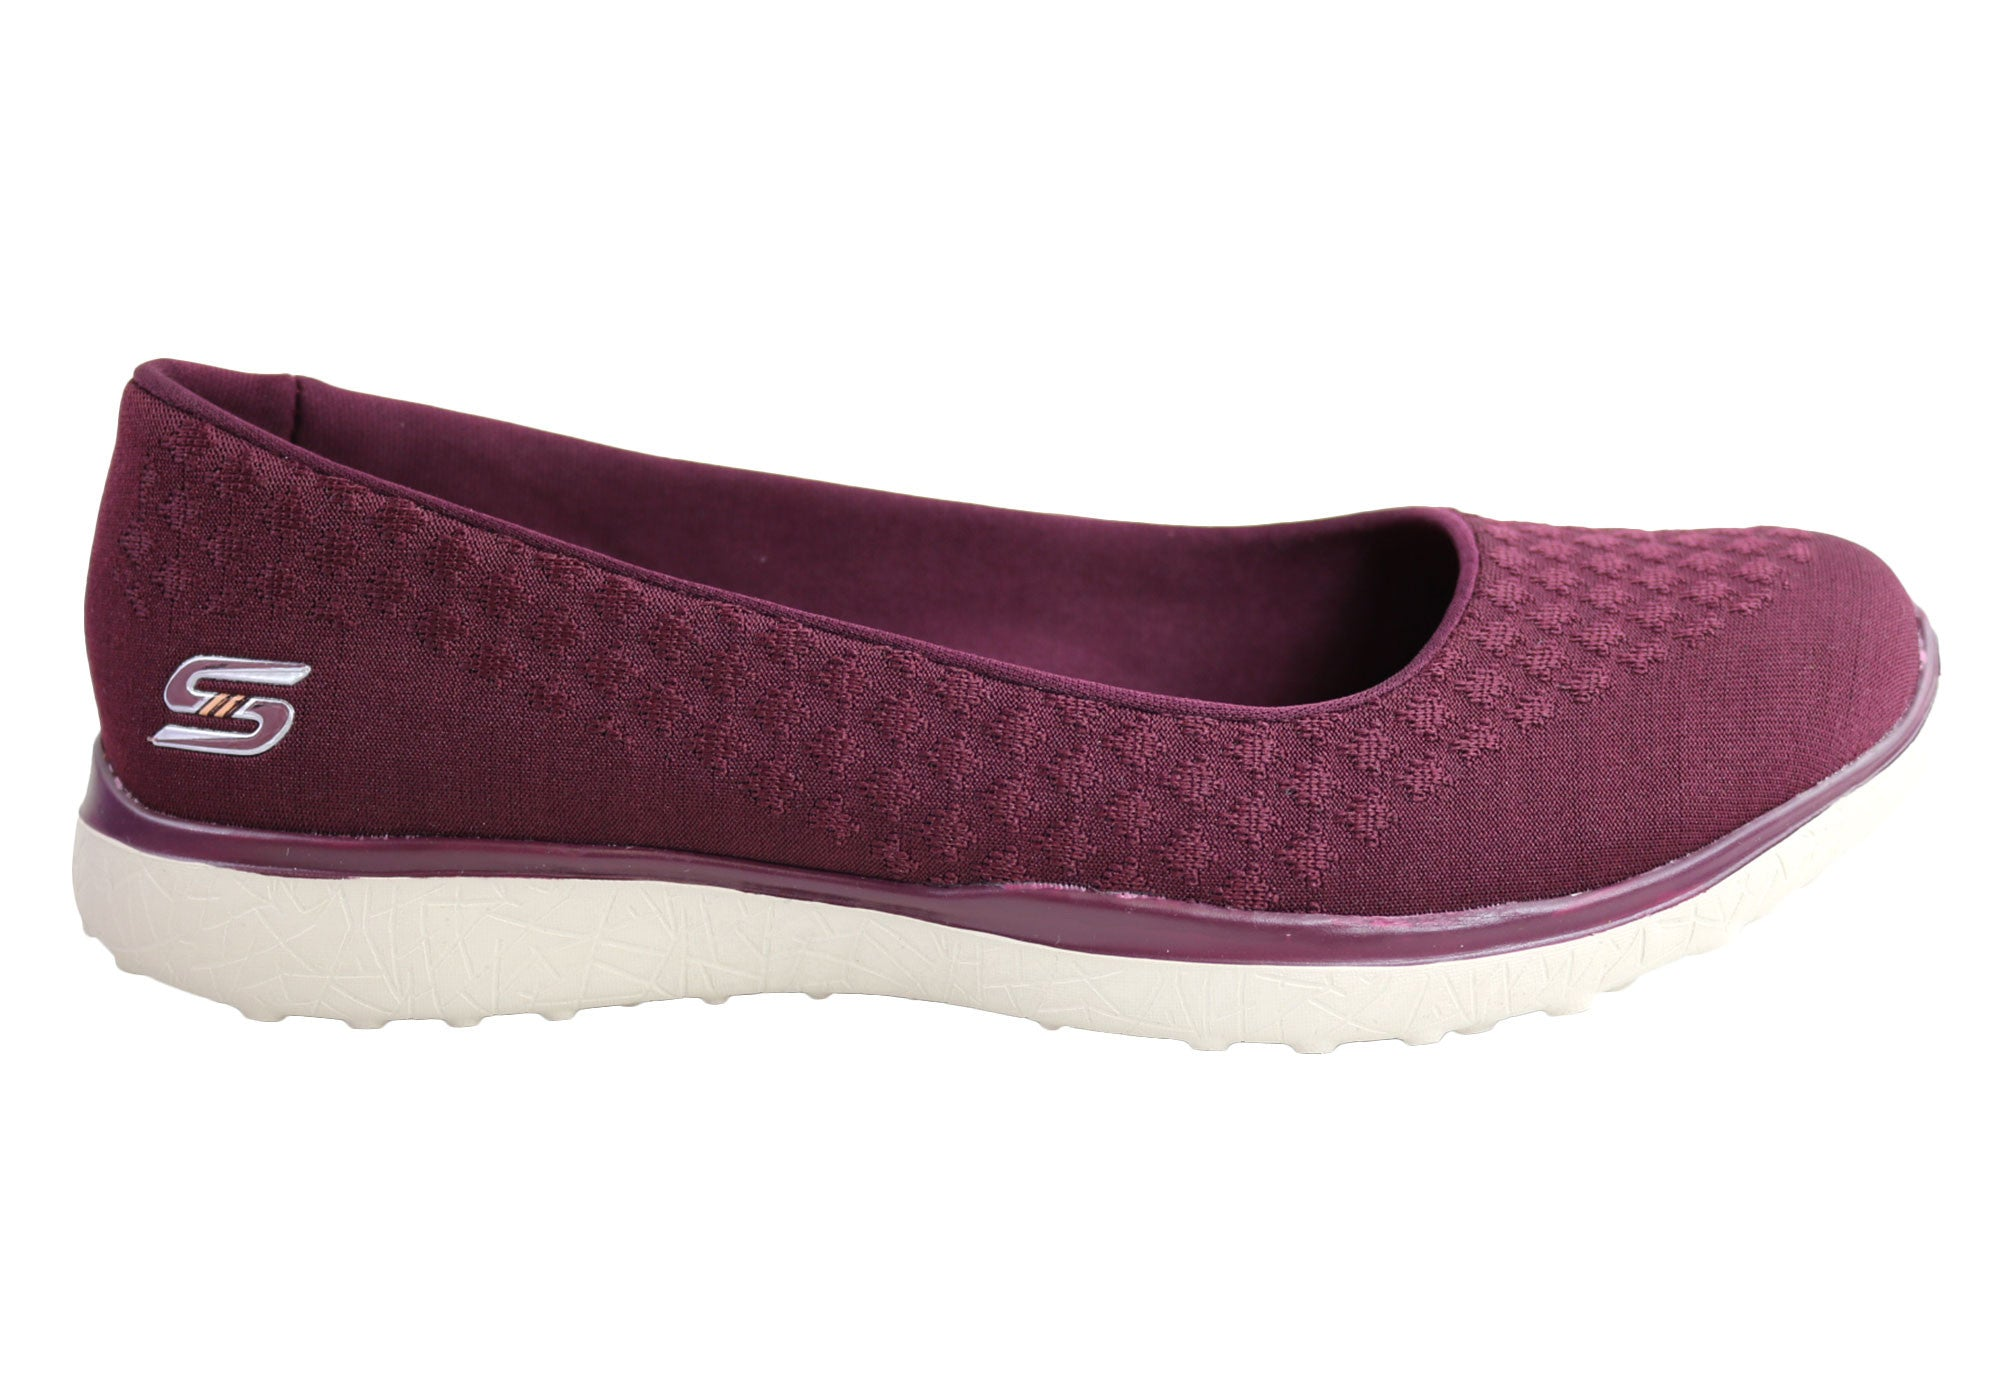 cb7c0a25e9b0 Skechers Microburst One Up Womens Memory Foam Flats